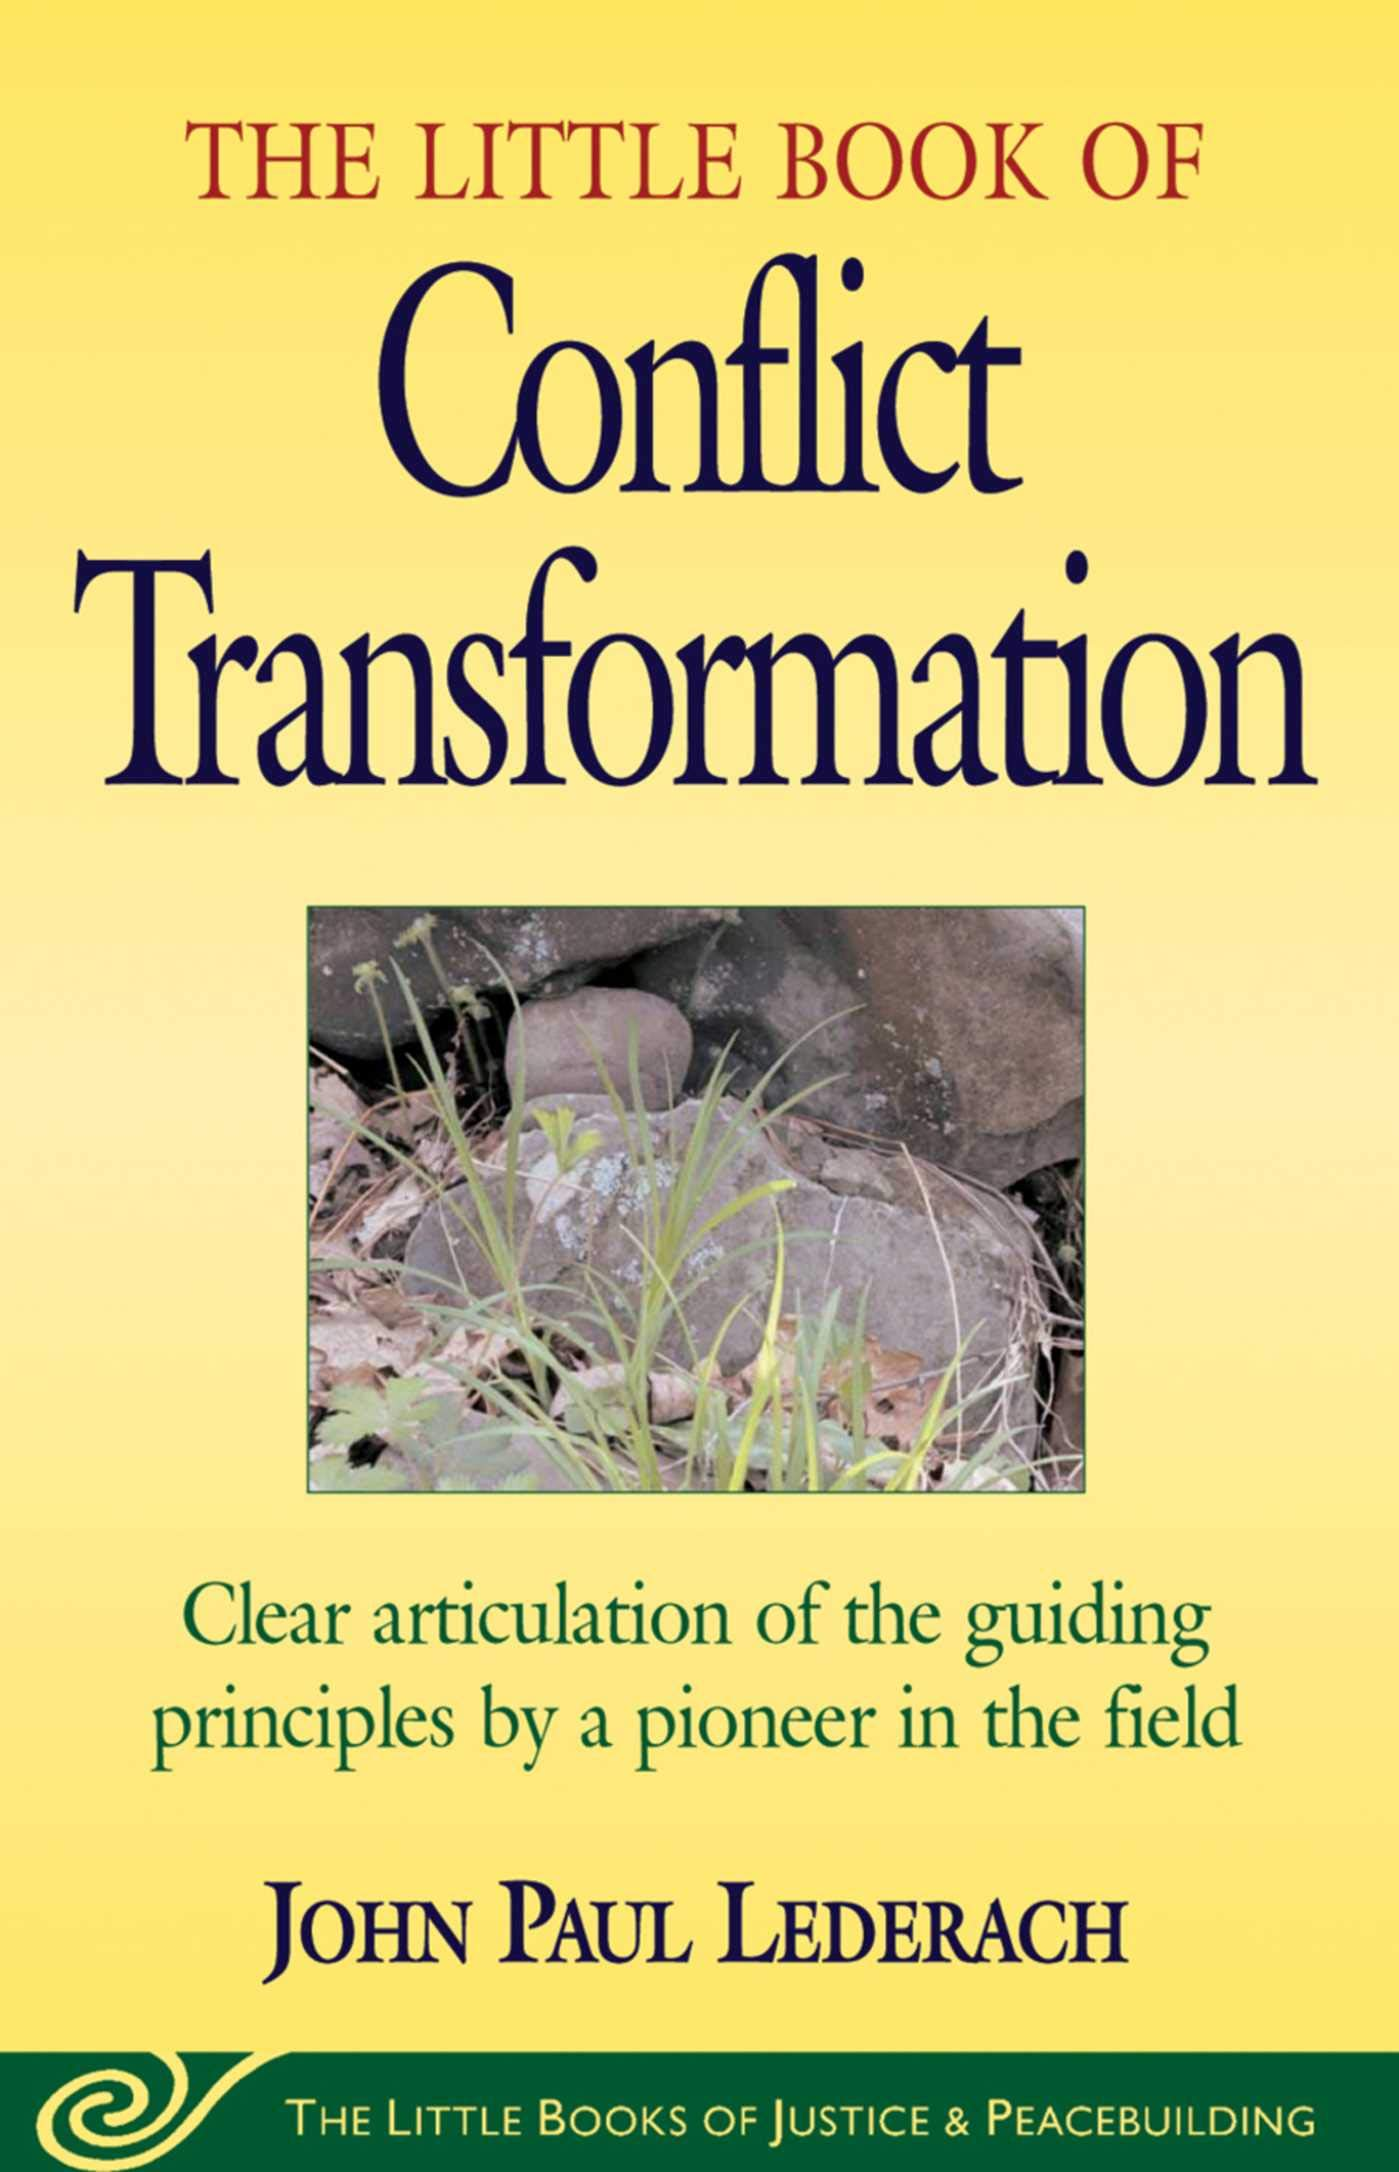 Little Book of Conflict Transformation: Clear Articulation Of The Guiding  Principles By A Pioneer In The Field (The Little Books of Justice and ...